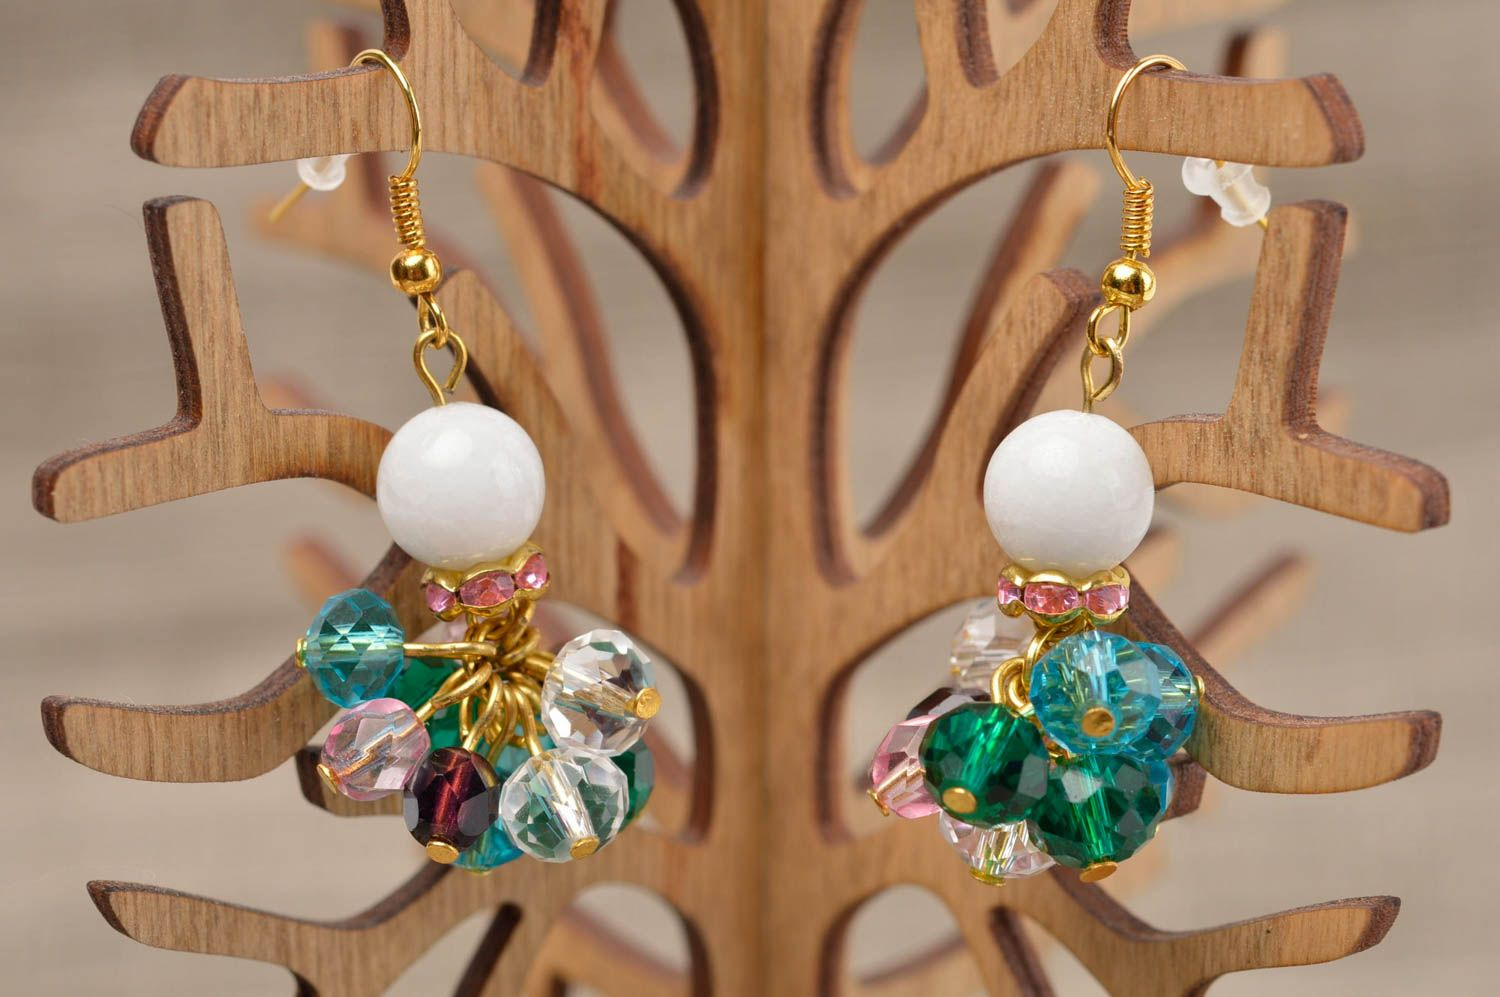 Fashion earrings handmade earrings with natural stones stylish jewelry for women photo 1